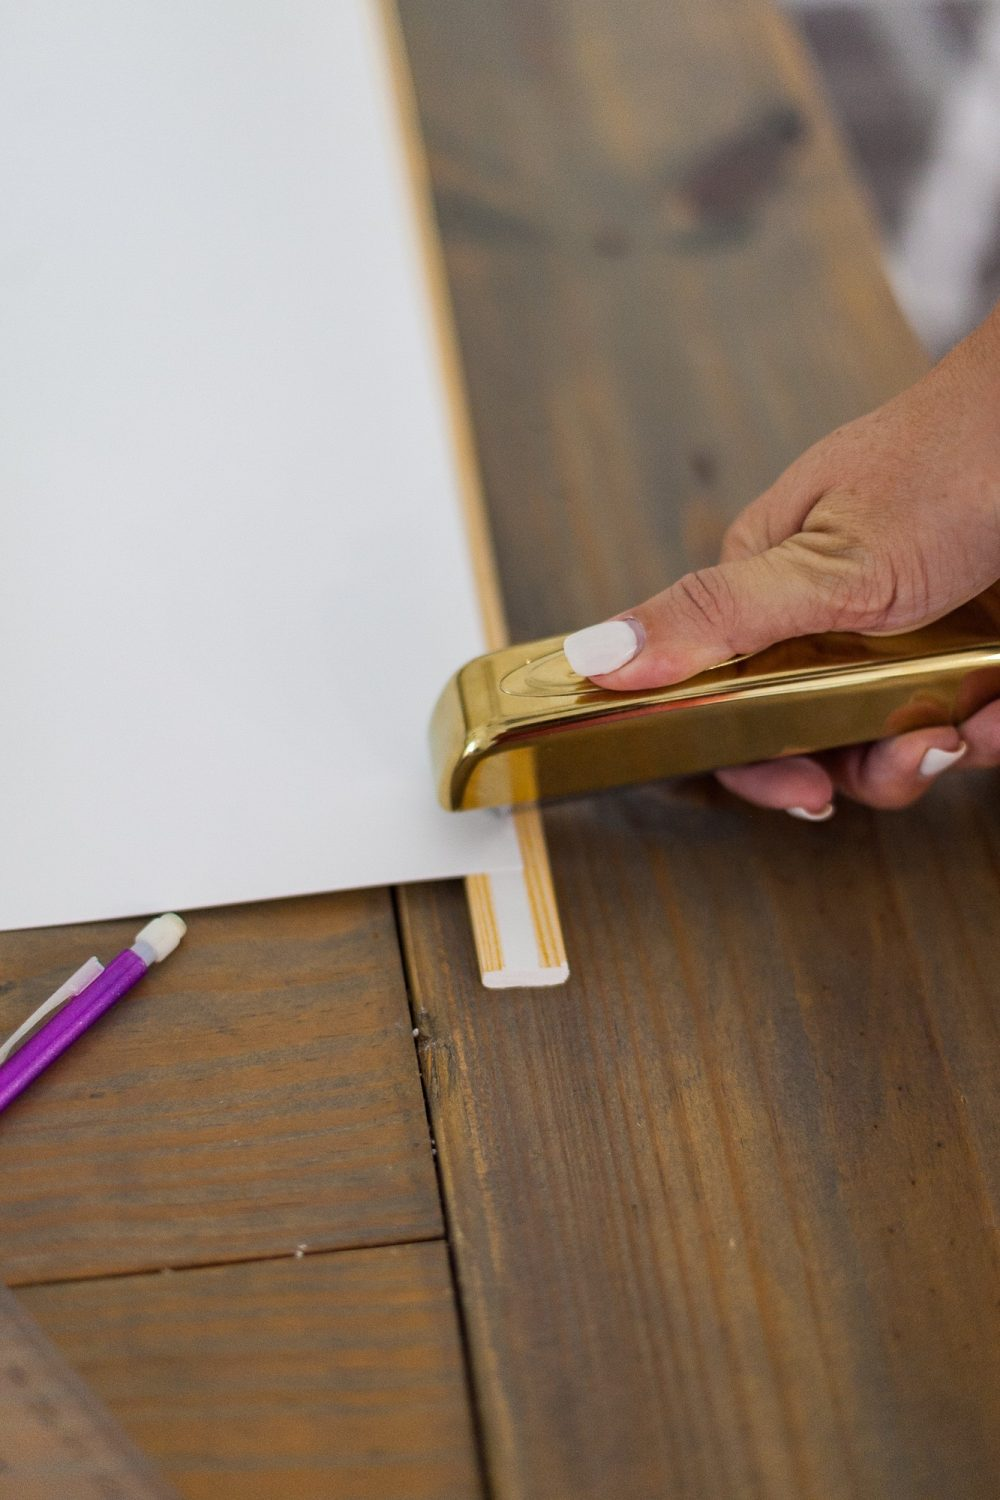 Click through for a fun, EASY DIY poster hanger tutorial. You can make your own DIY poster hanger for $3 in just a few short minutes!   DIY Poster Hanger by popular Florida DIY blog, Fresh Mommy Blog: image of a woman attaching a poster board to some wood moulding with a gold stapler.